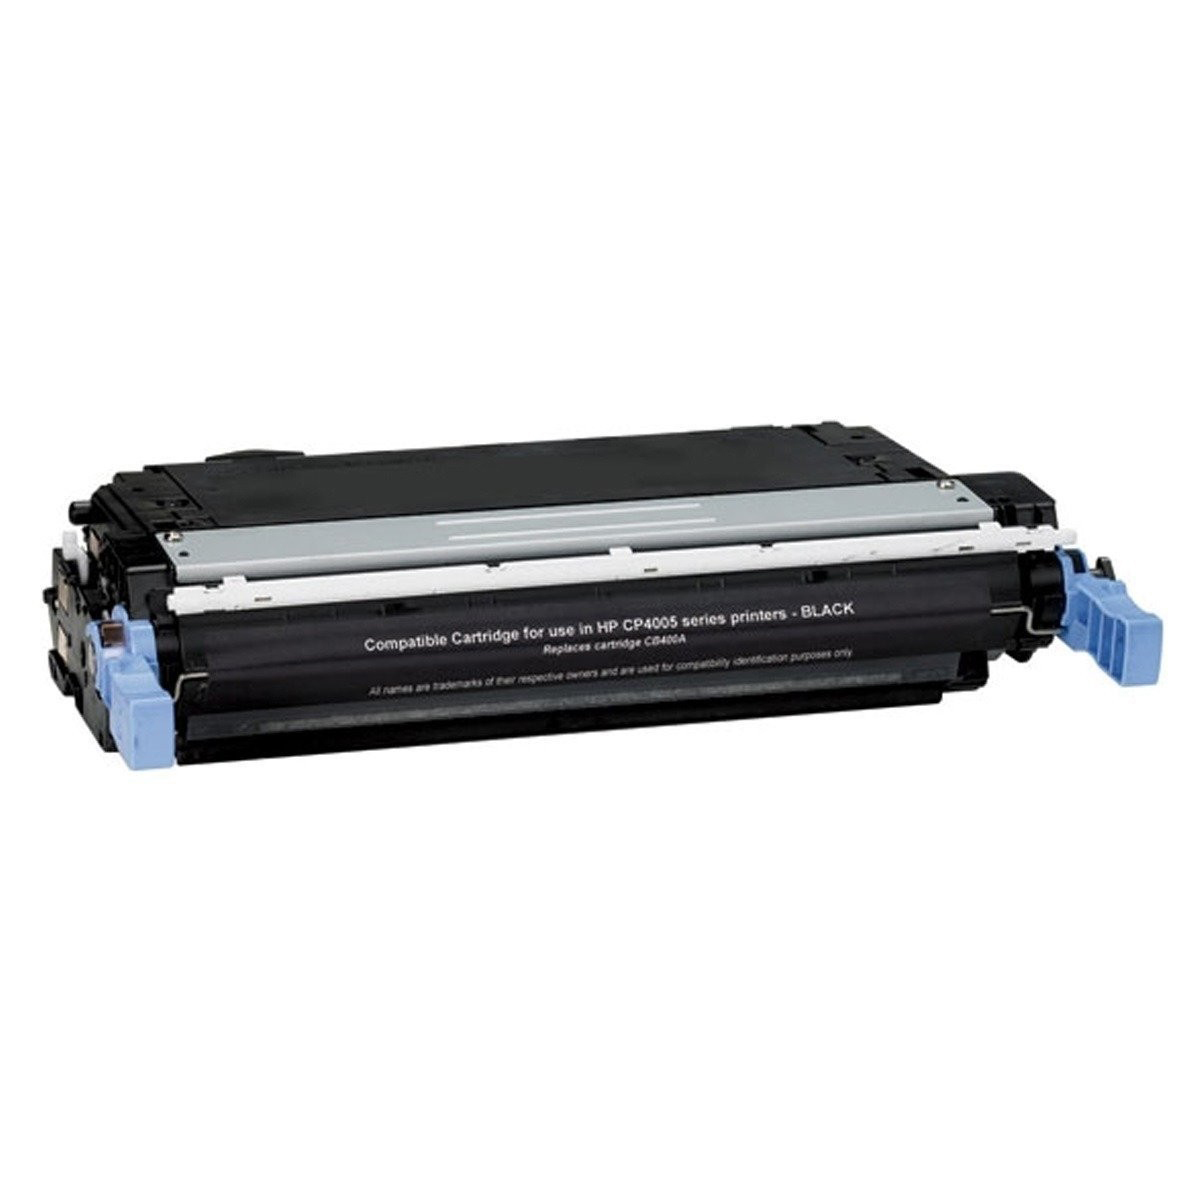 Image of   HP CB400A BK (HP 642A) Lasertoner,sort.Kompatibel,7500 sider